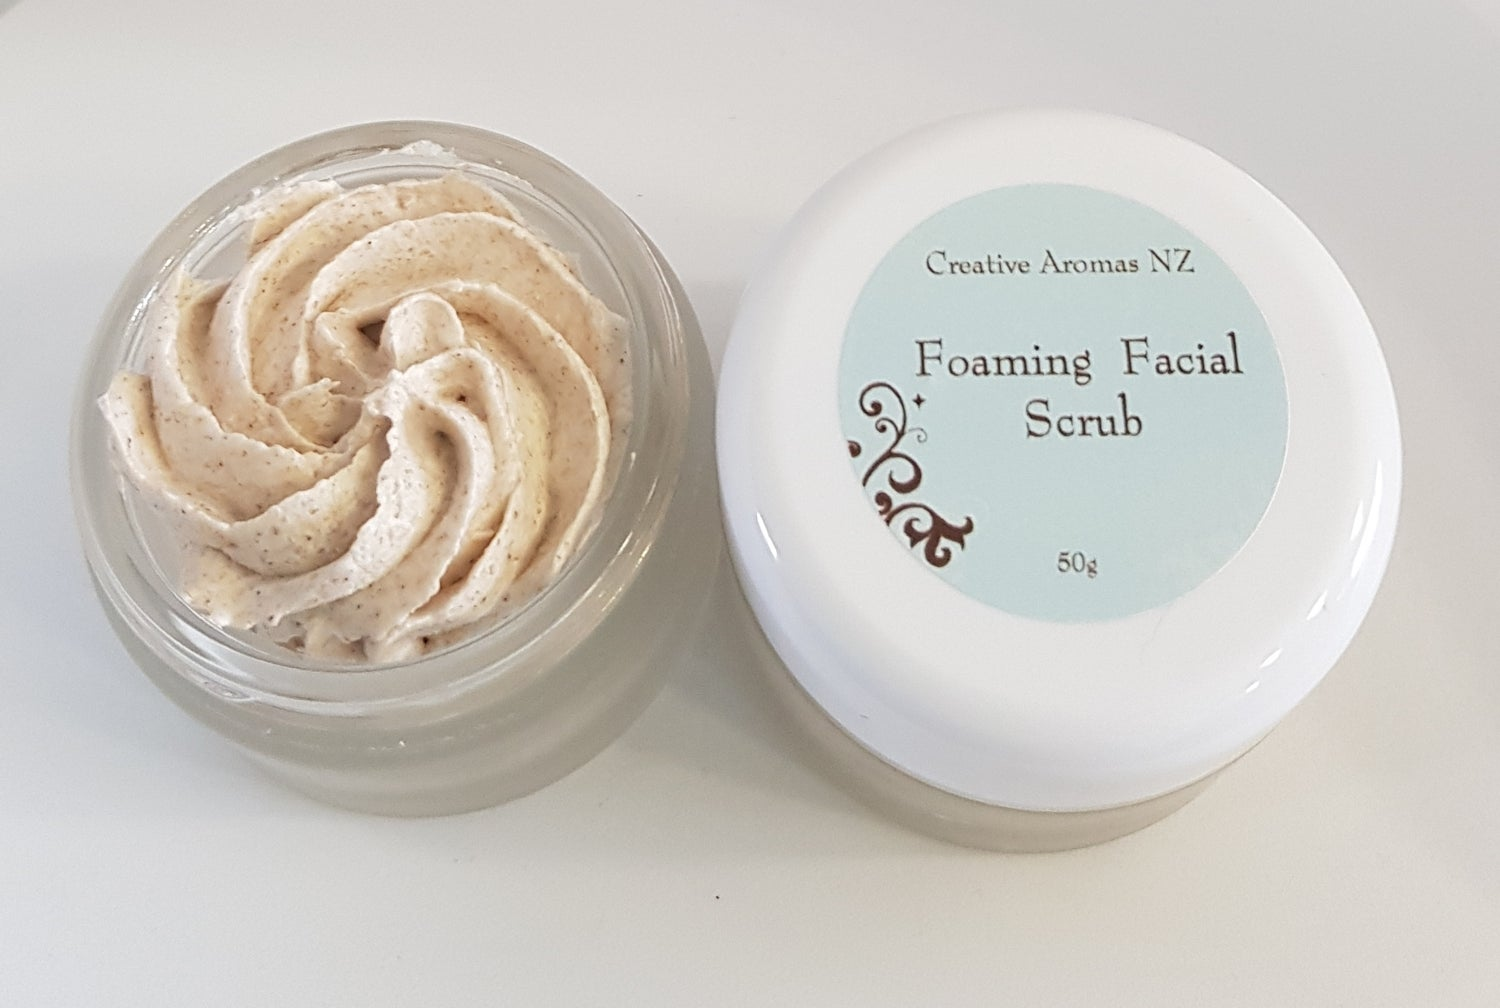 Image of Foaming Facial Scrub